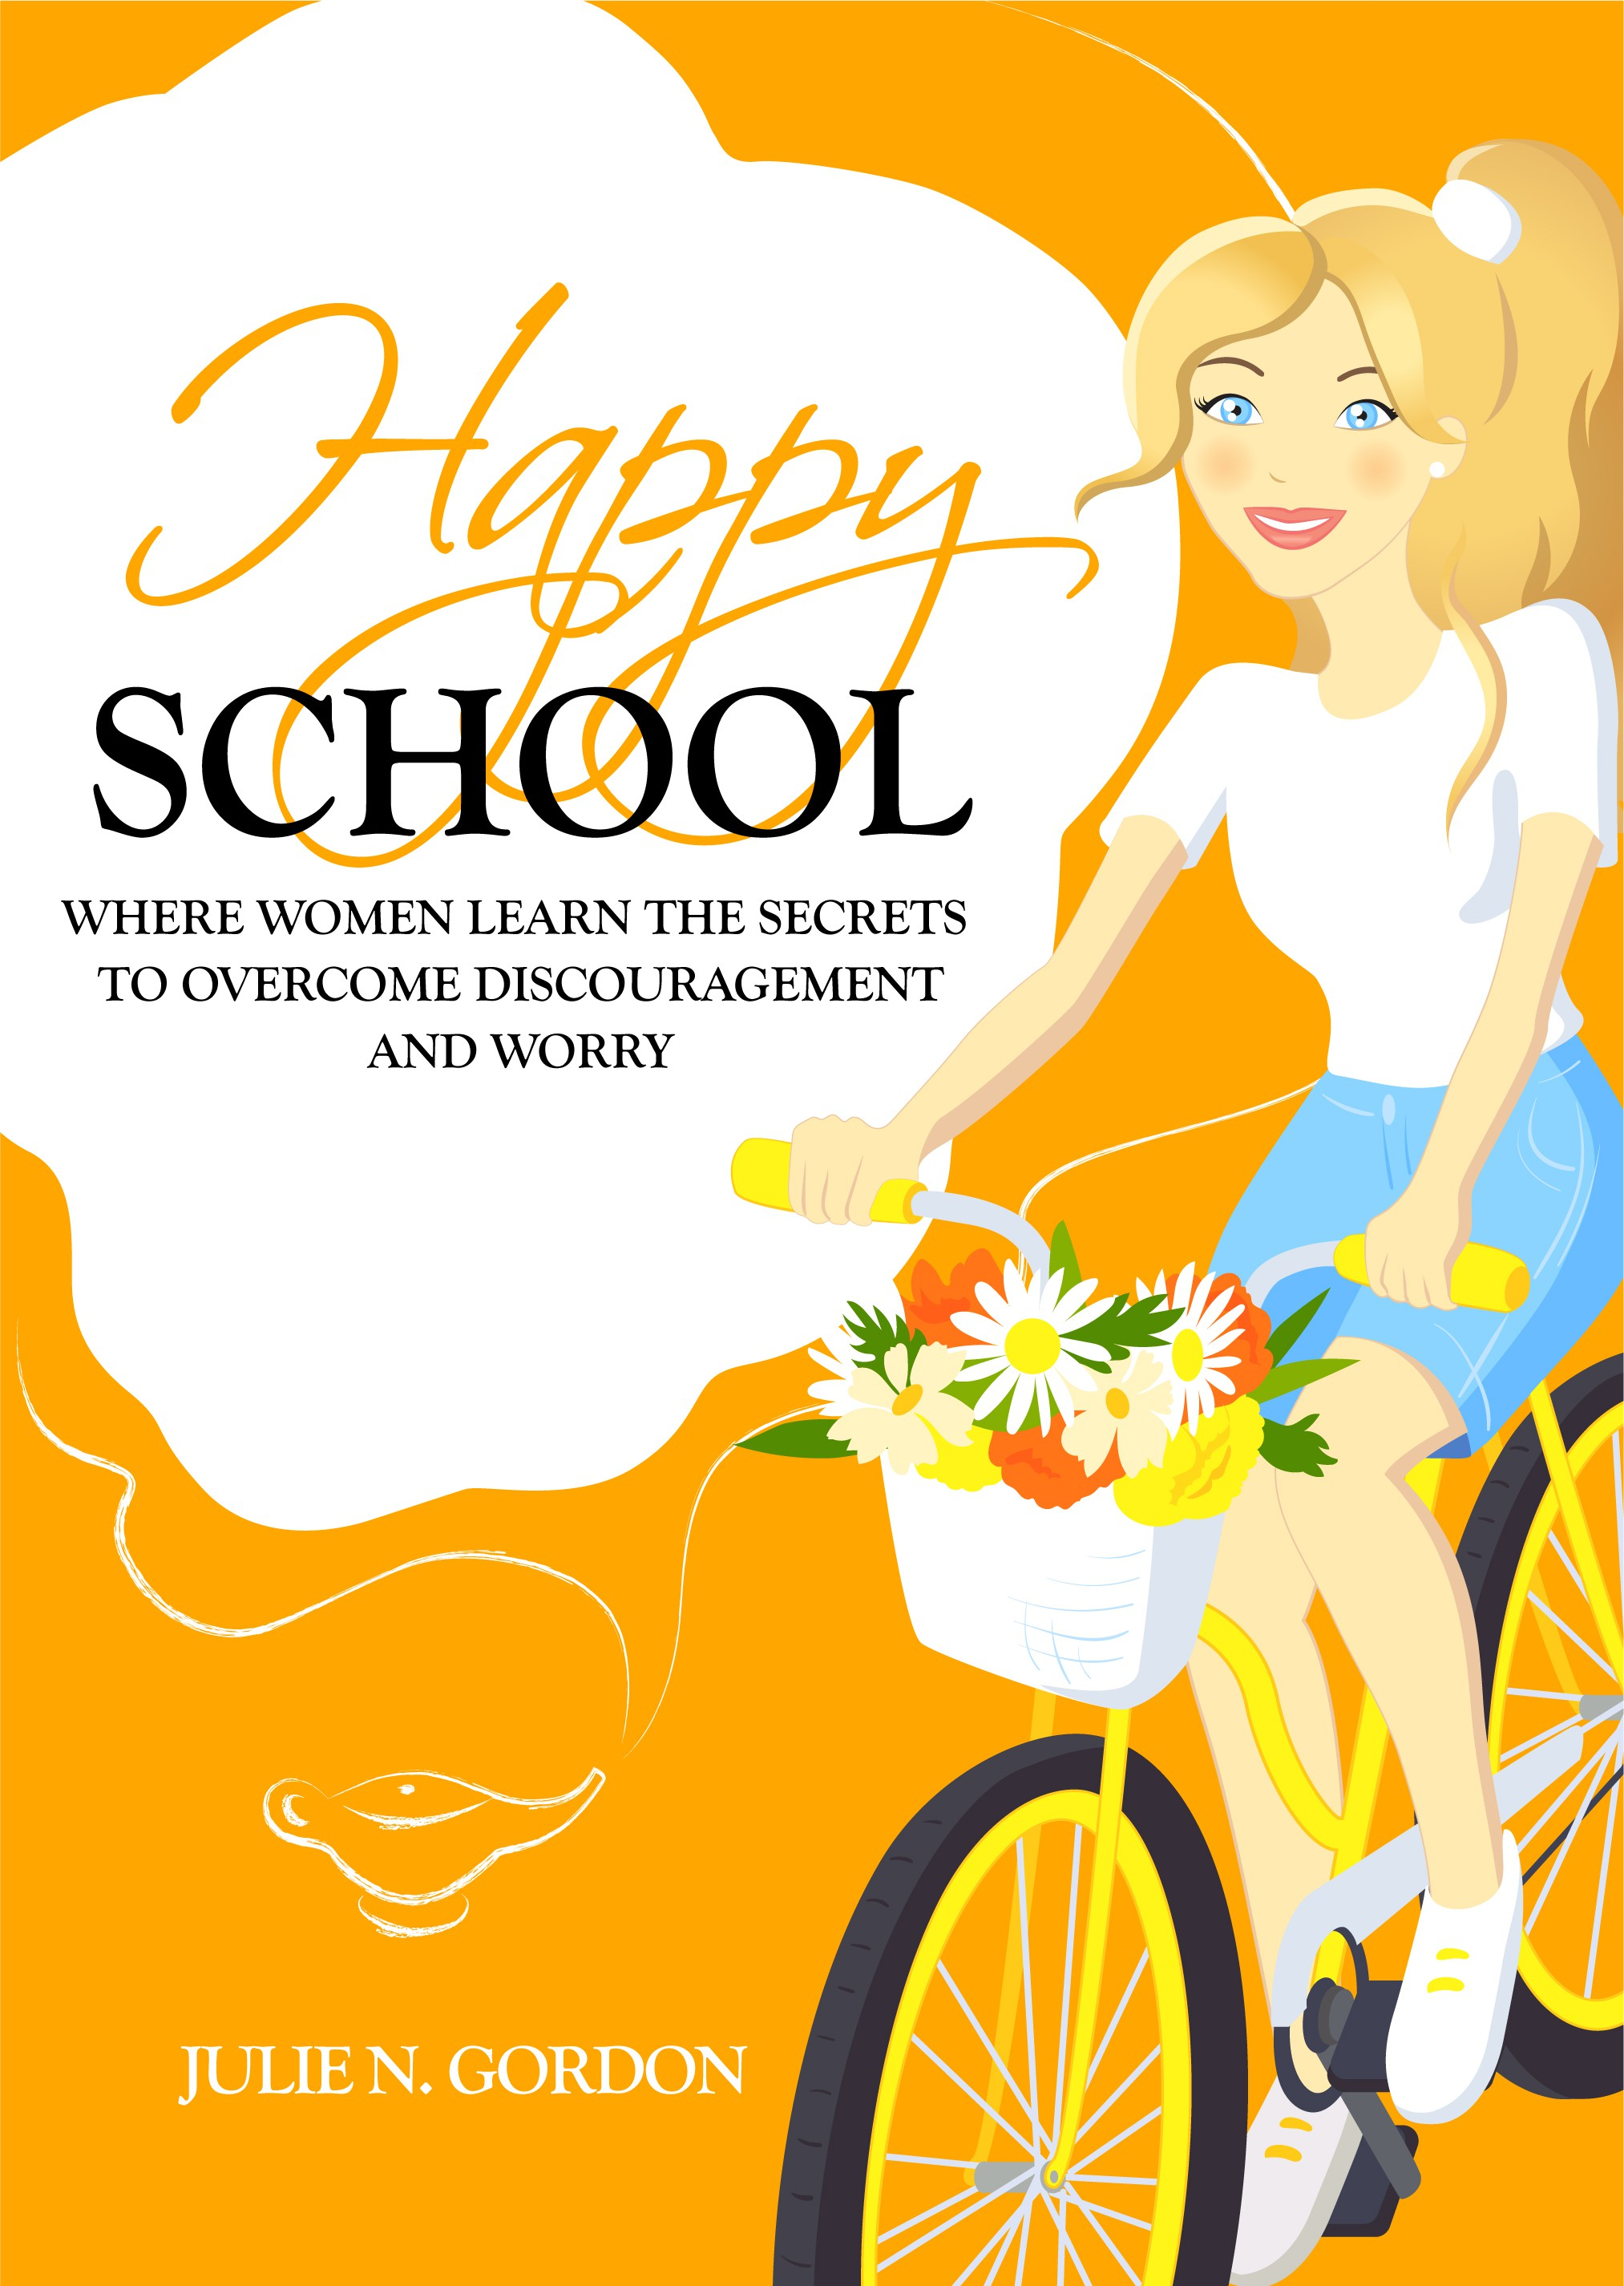 Happy School: Where Women Learn the Secrets to Overcome Discouragement and Worry